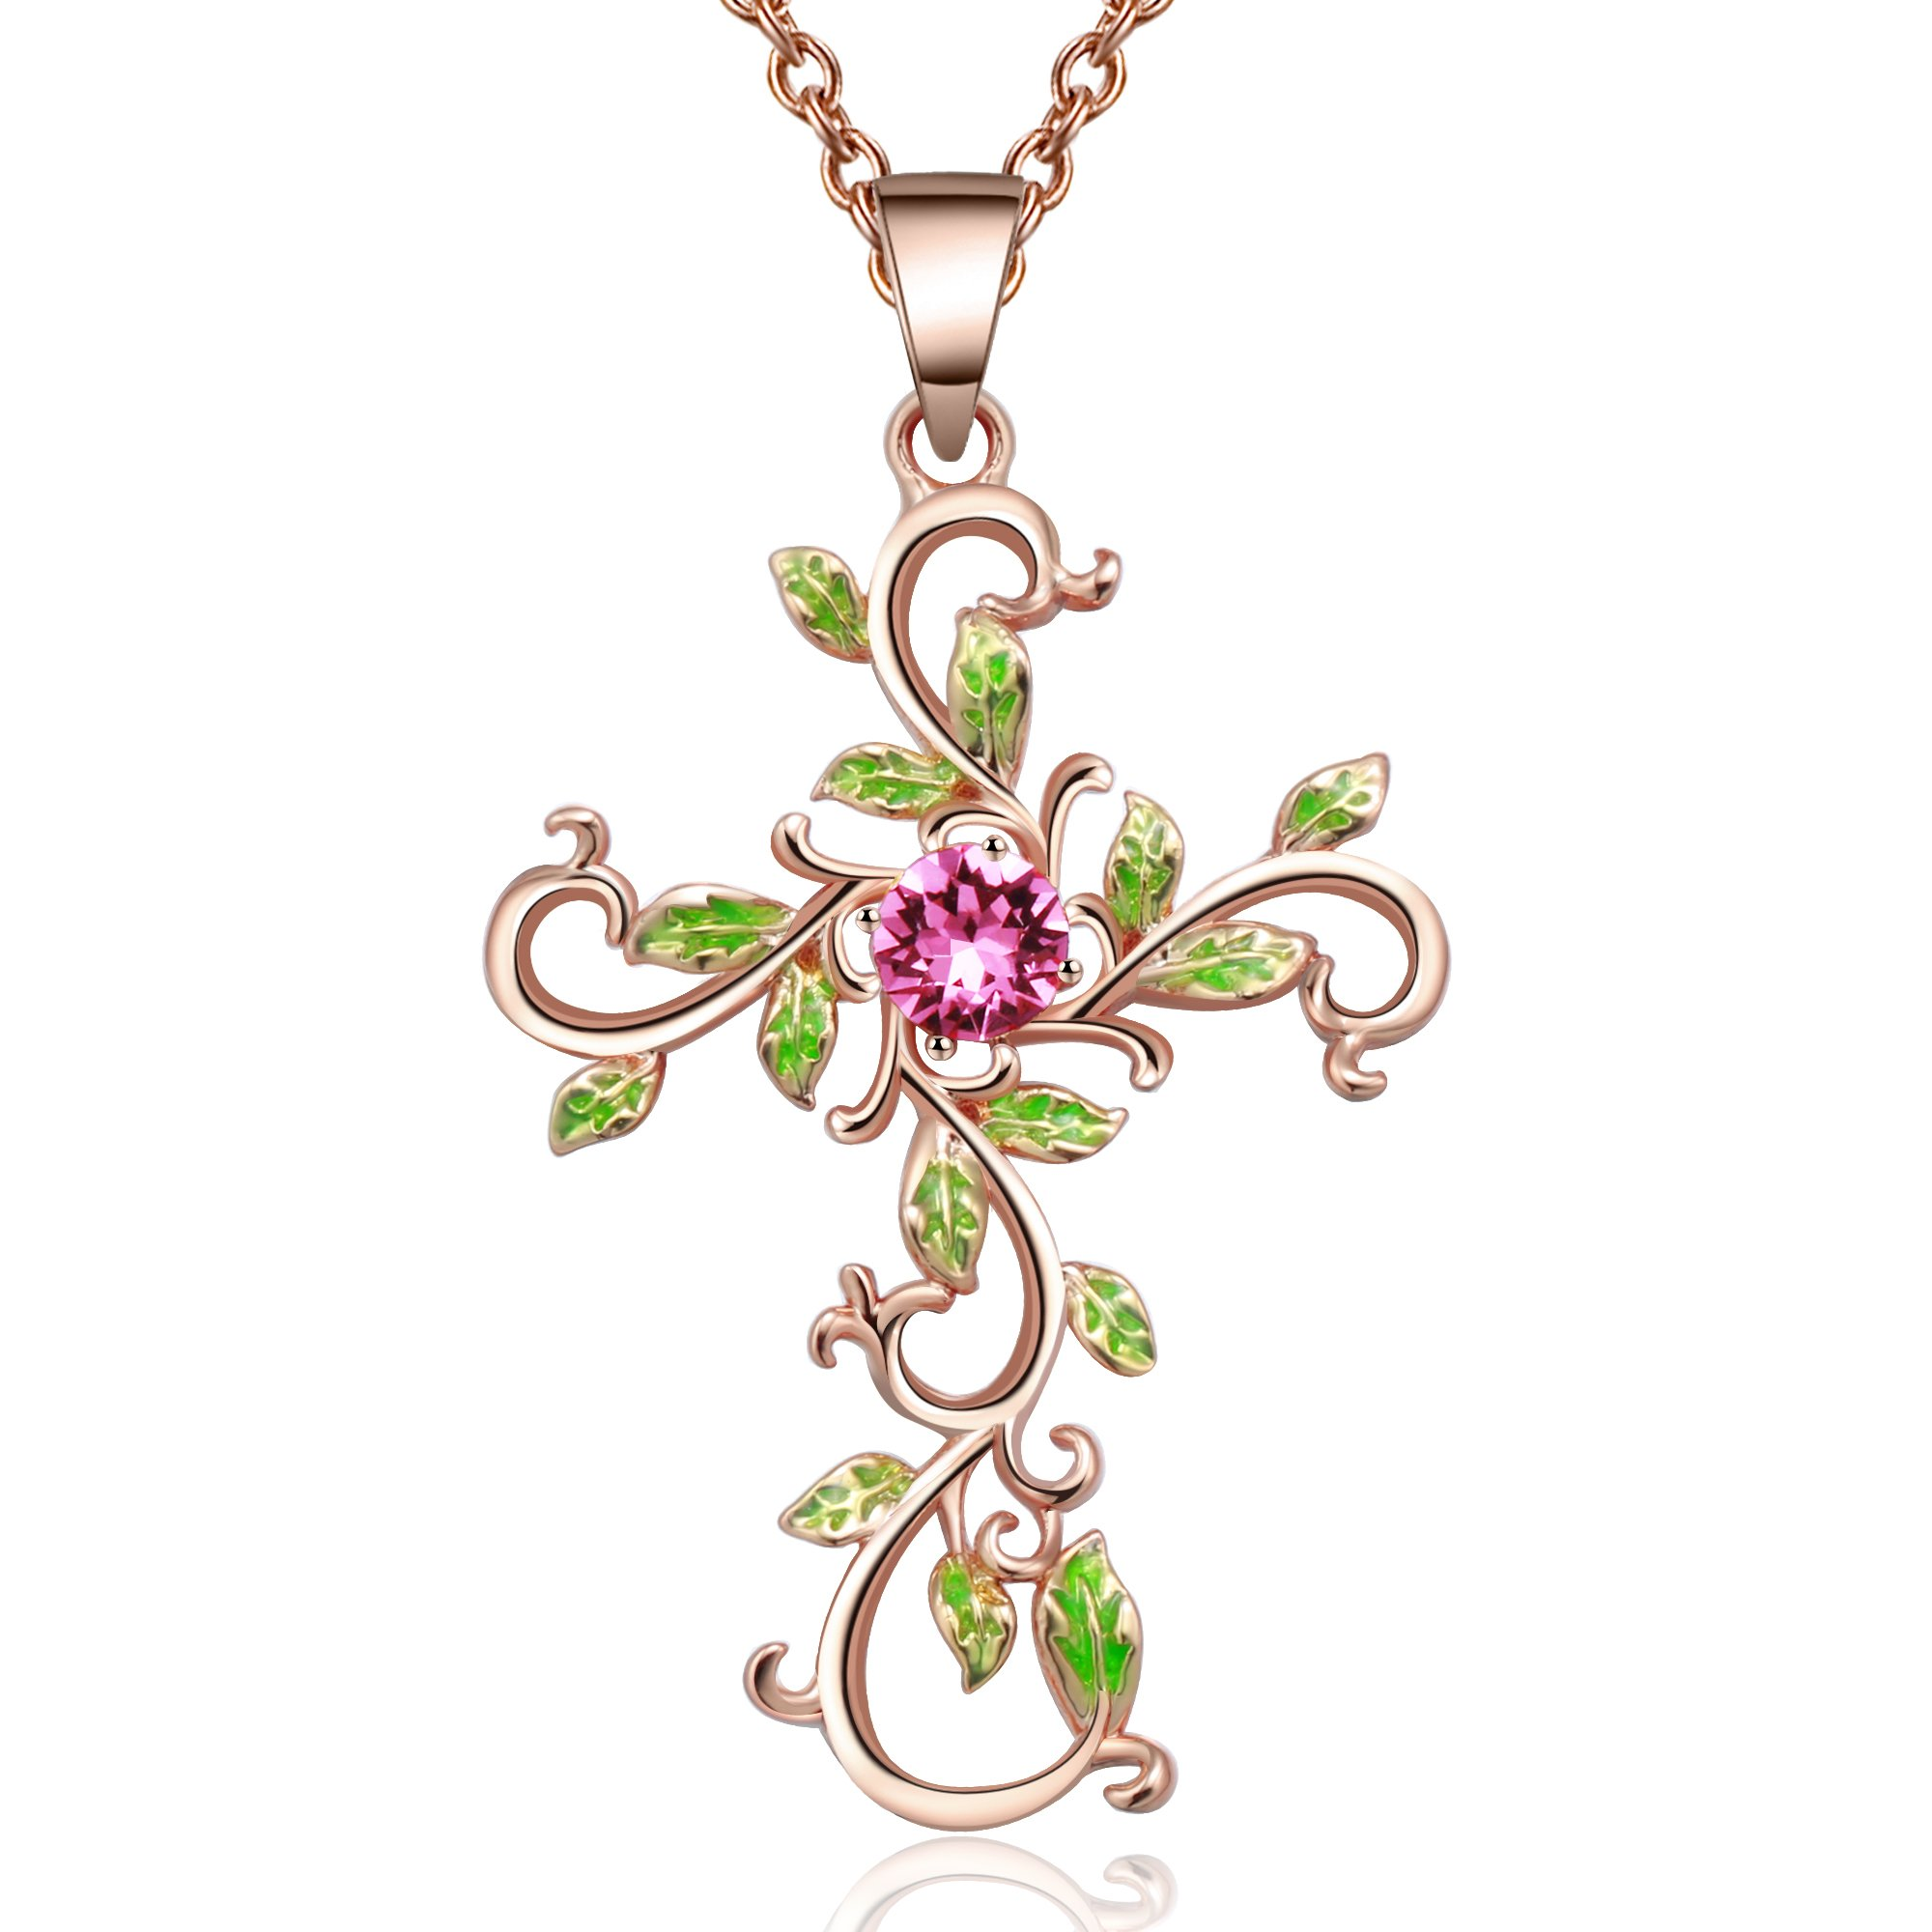 Angelady ''God We Trust Cross Pendant Necklace for Women Gifts,Rose Gold Plated Chain Necklace, Pink Crystal from Swarovski